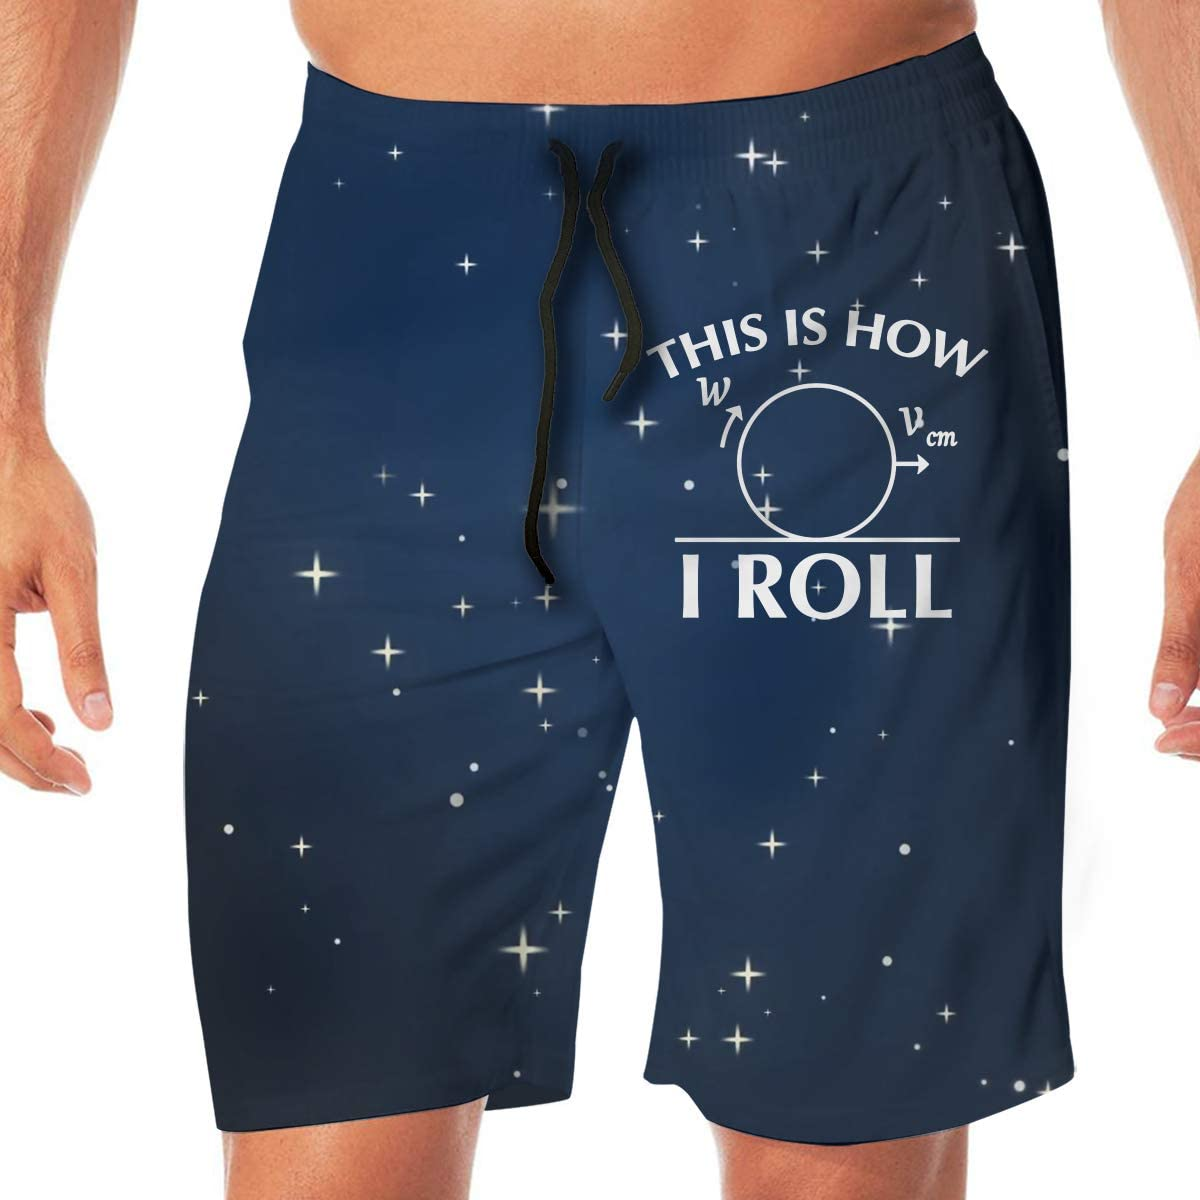 This is How I Roll Funny Math Mens Classic Summer Shorts Casual Swim Shorts with Pockets